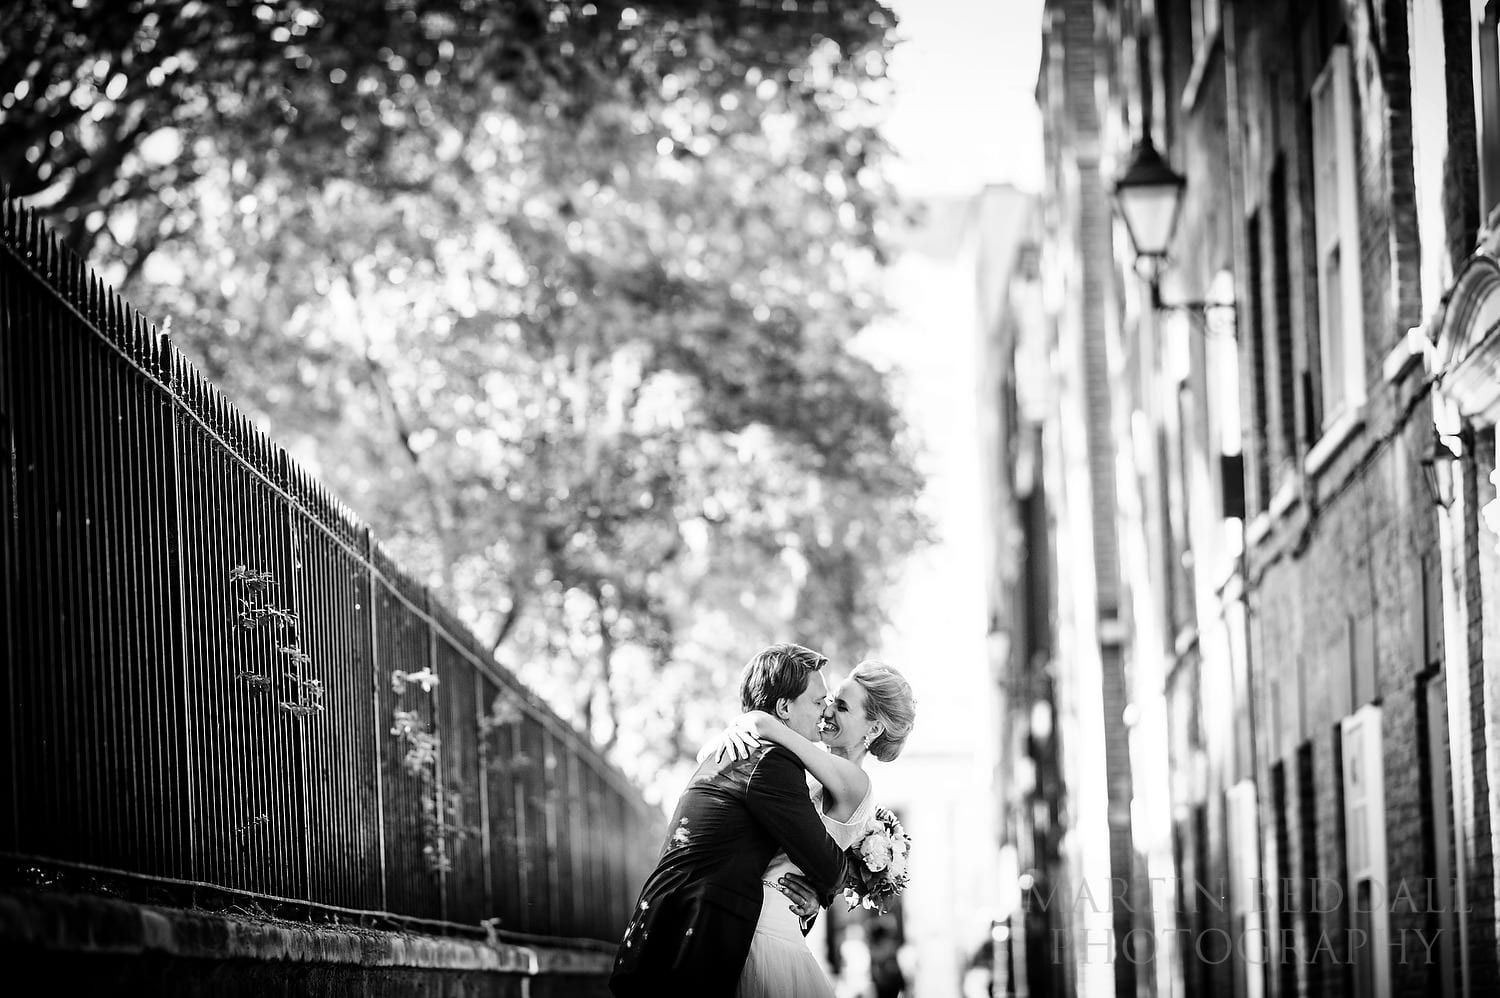 Wedding Photography in 2013